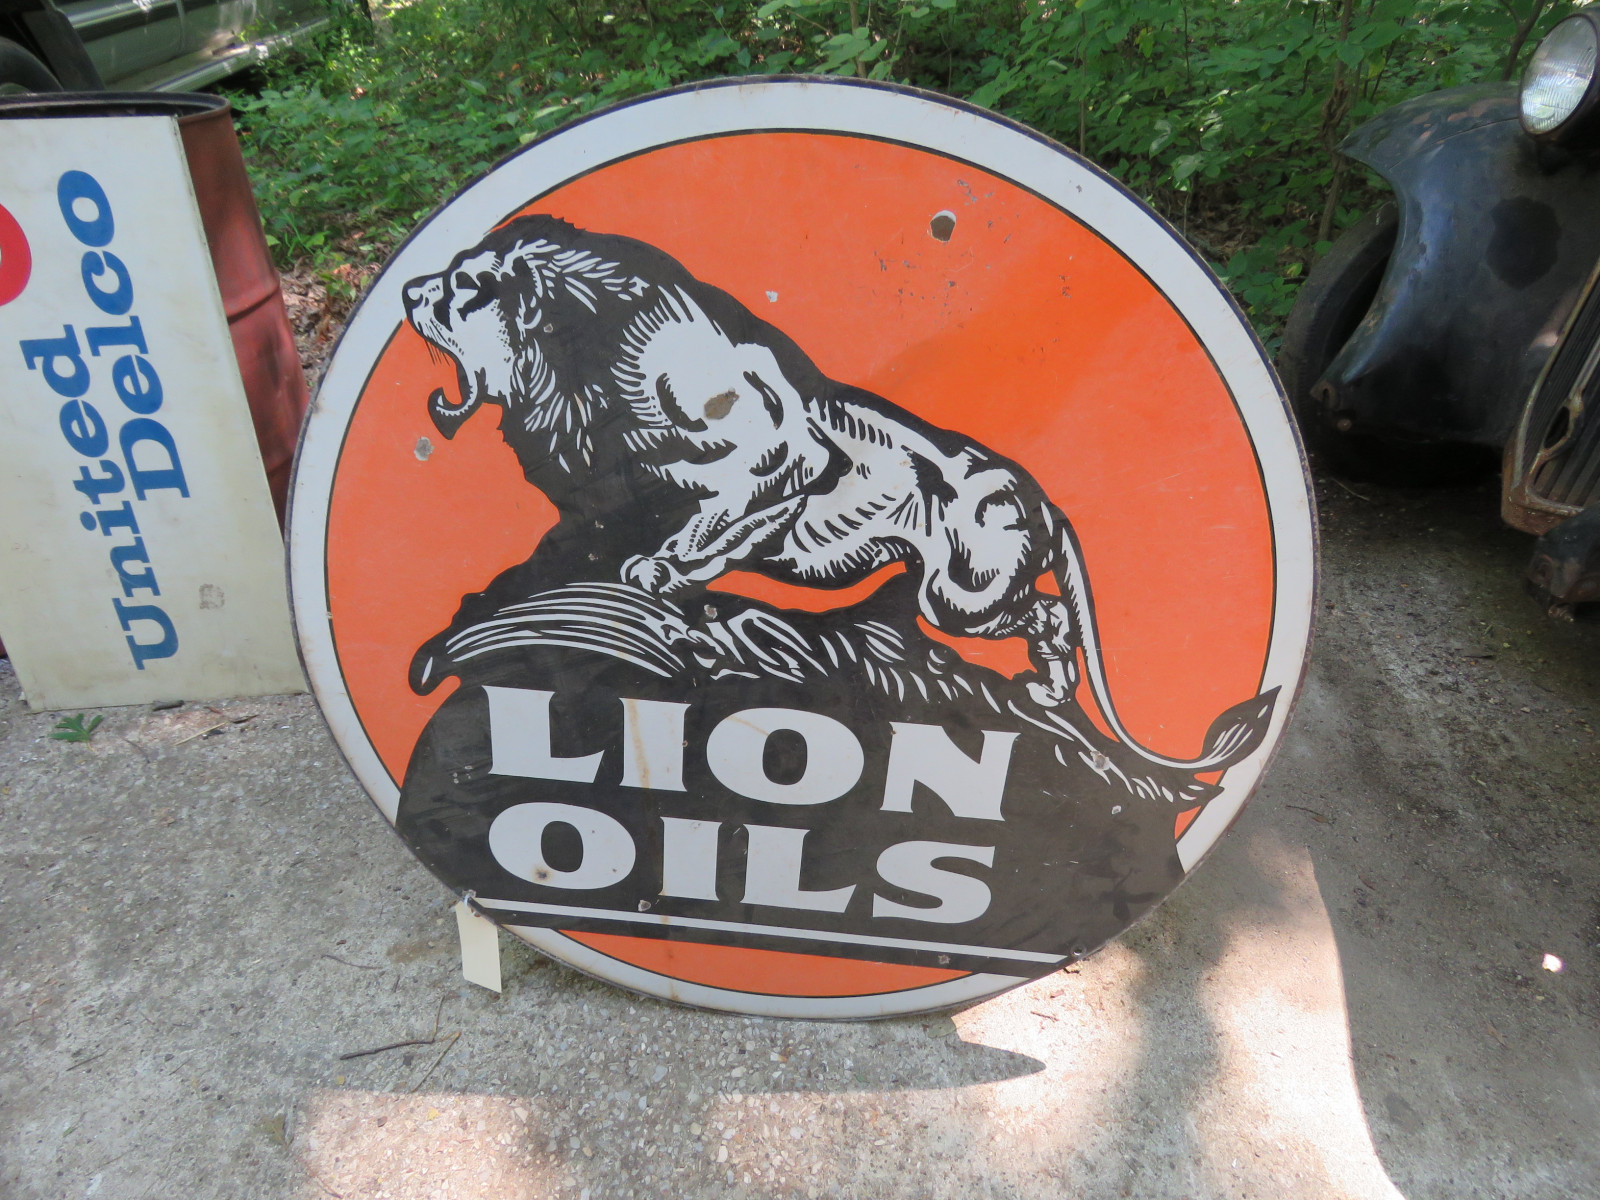 Lion Oil DS Porcelain Sign 41 inches Round - Image 1